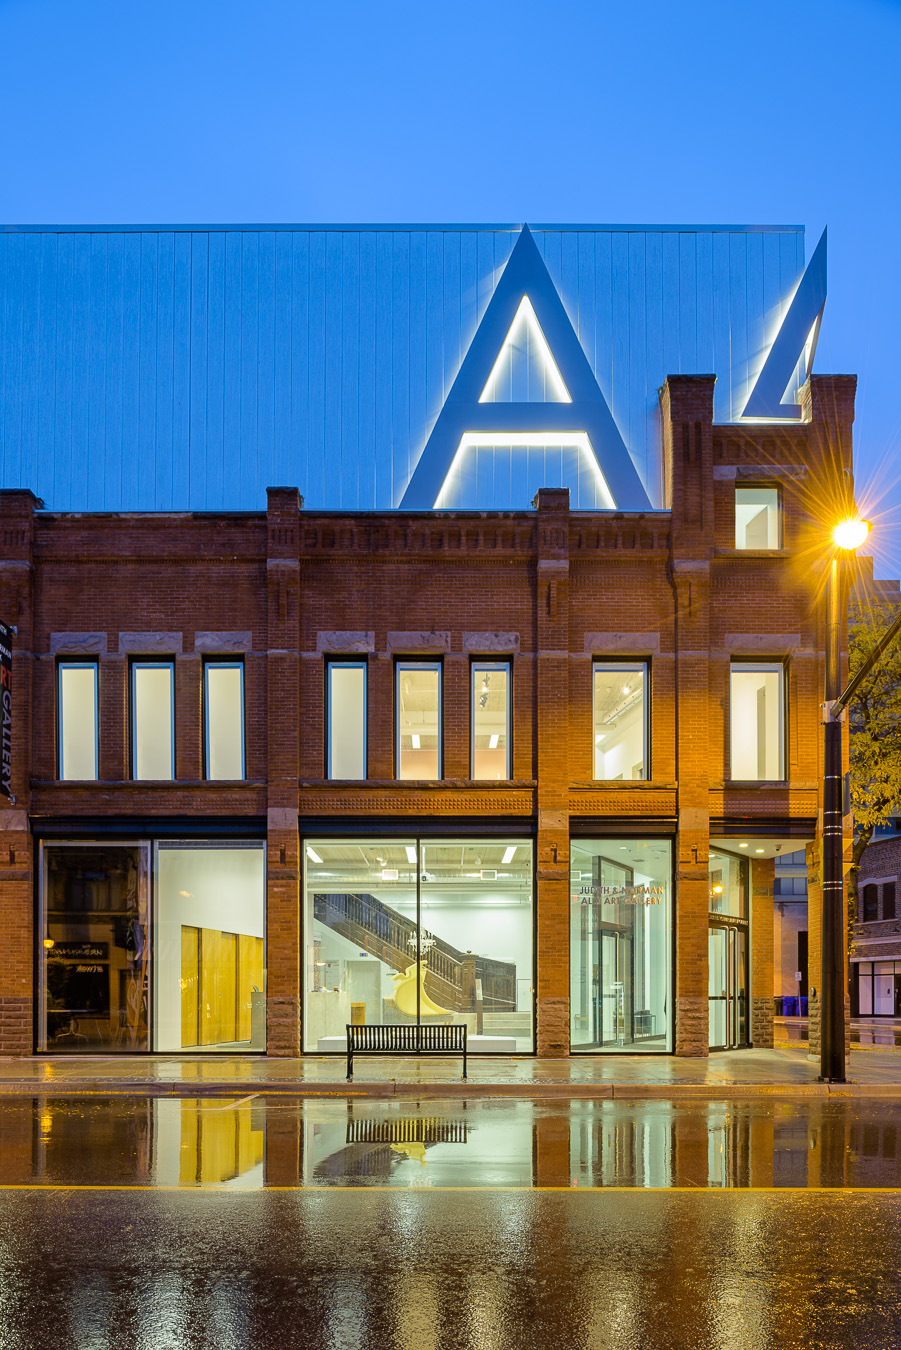 Doublespace Toronto Architectural PhotographyKongats Alix Art Gallery Sarnia exterior at dusk